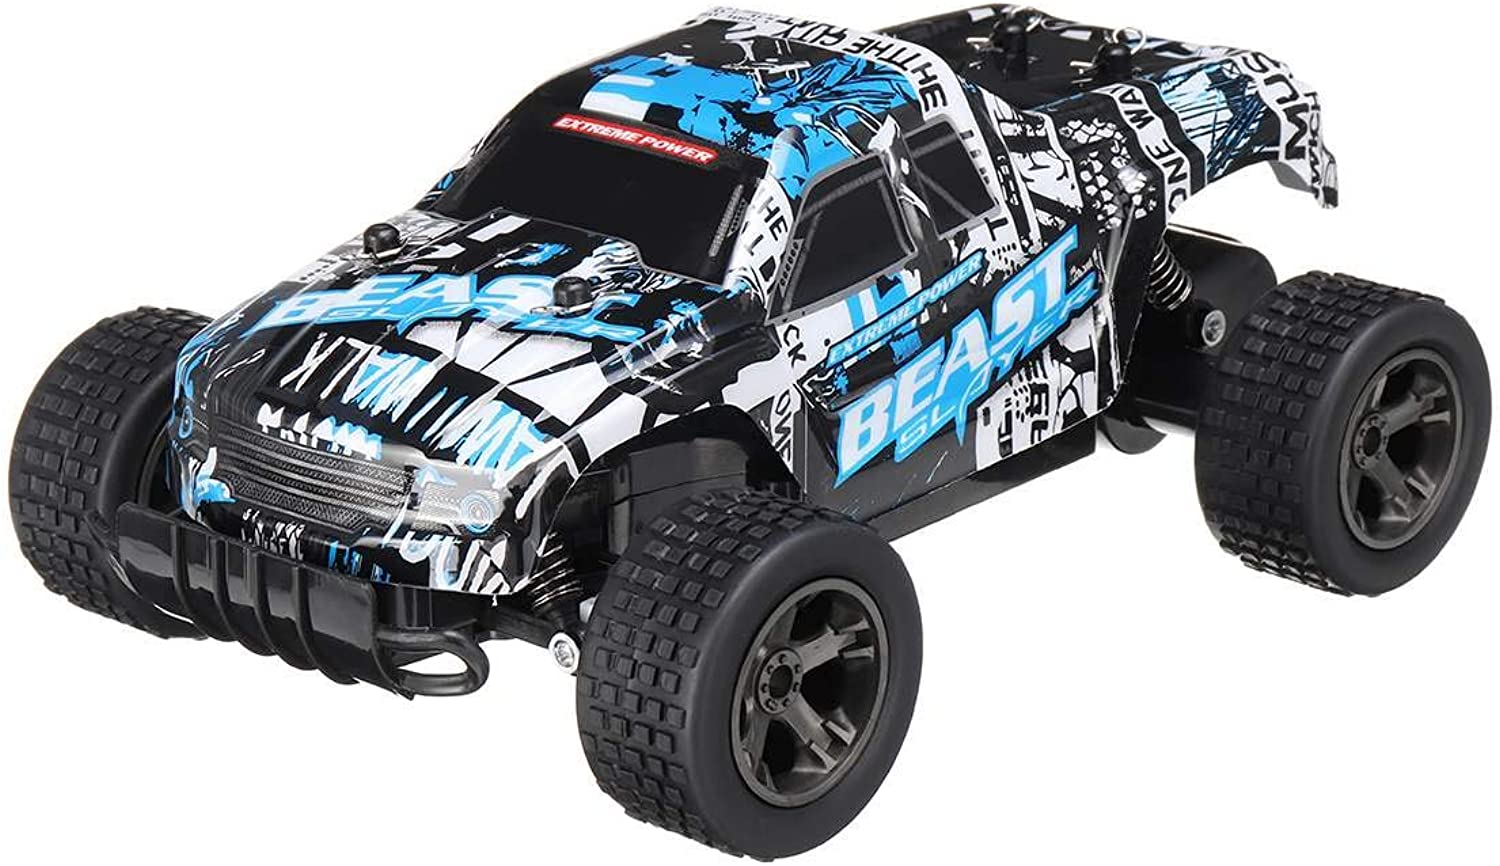 Generic RC Car 48KM H 2.4ghz 1 20 4WD Remote Control High Speed Truck Electric Truck Offroad Vehicle 4x4 Driving Car Vehicle Toy bluee